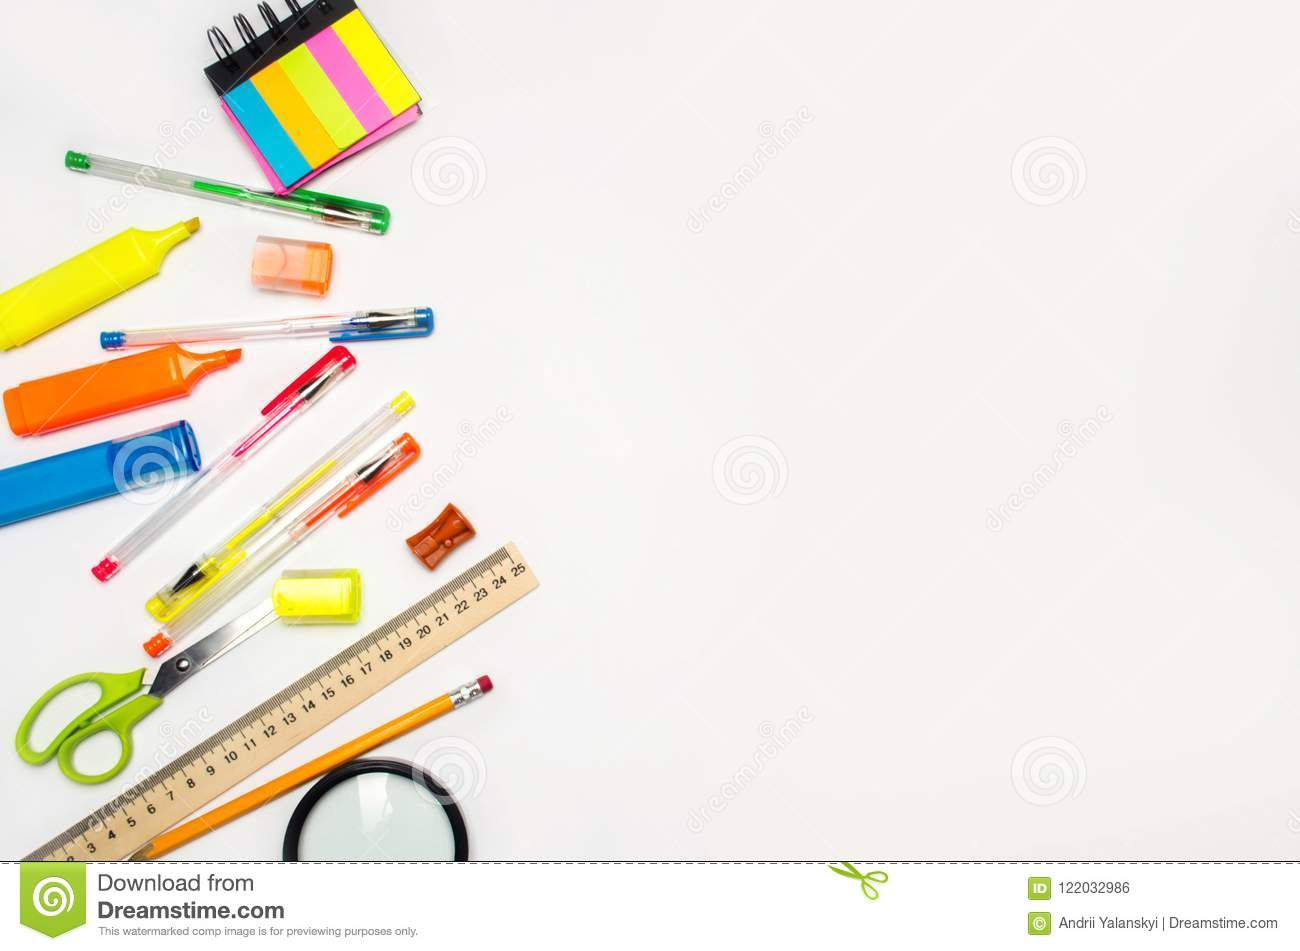 School accessories on a white background. stationery. back to school. concept of education. desk. color pens, pencils, ruler, alar